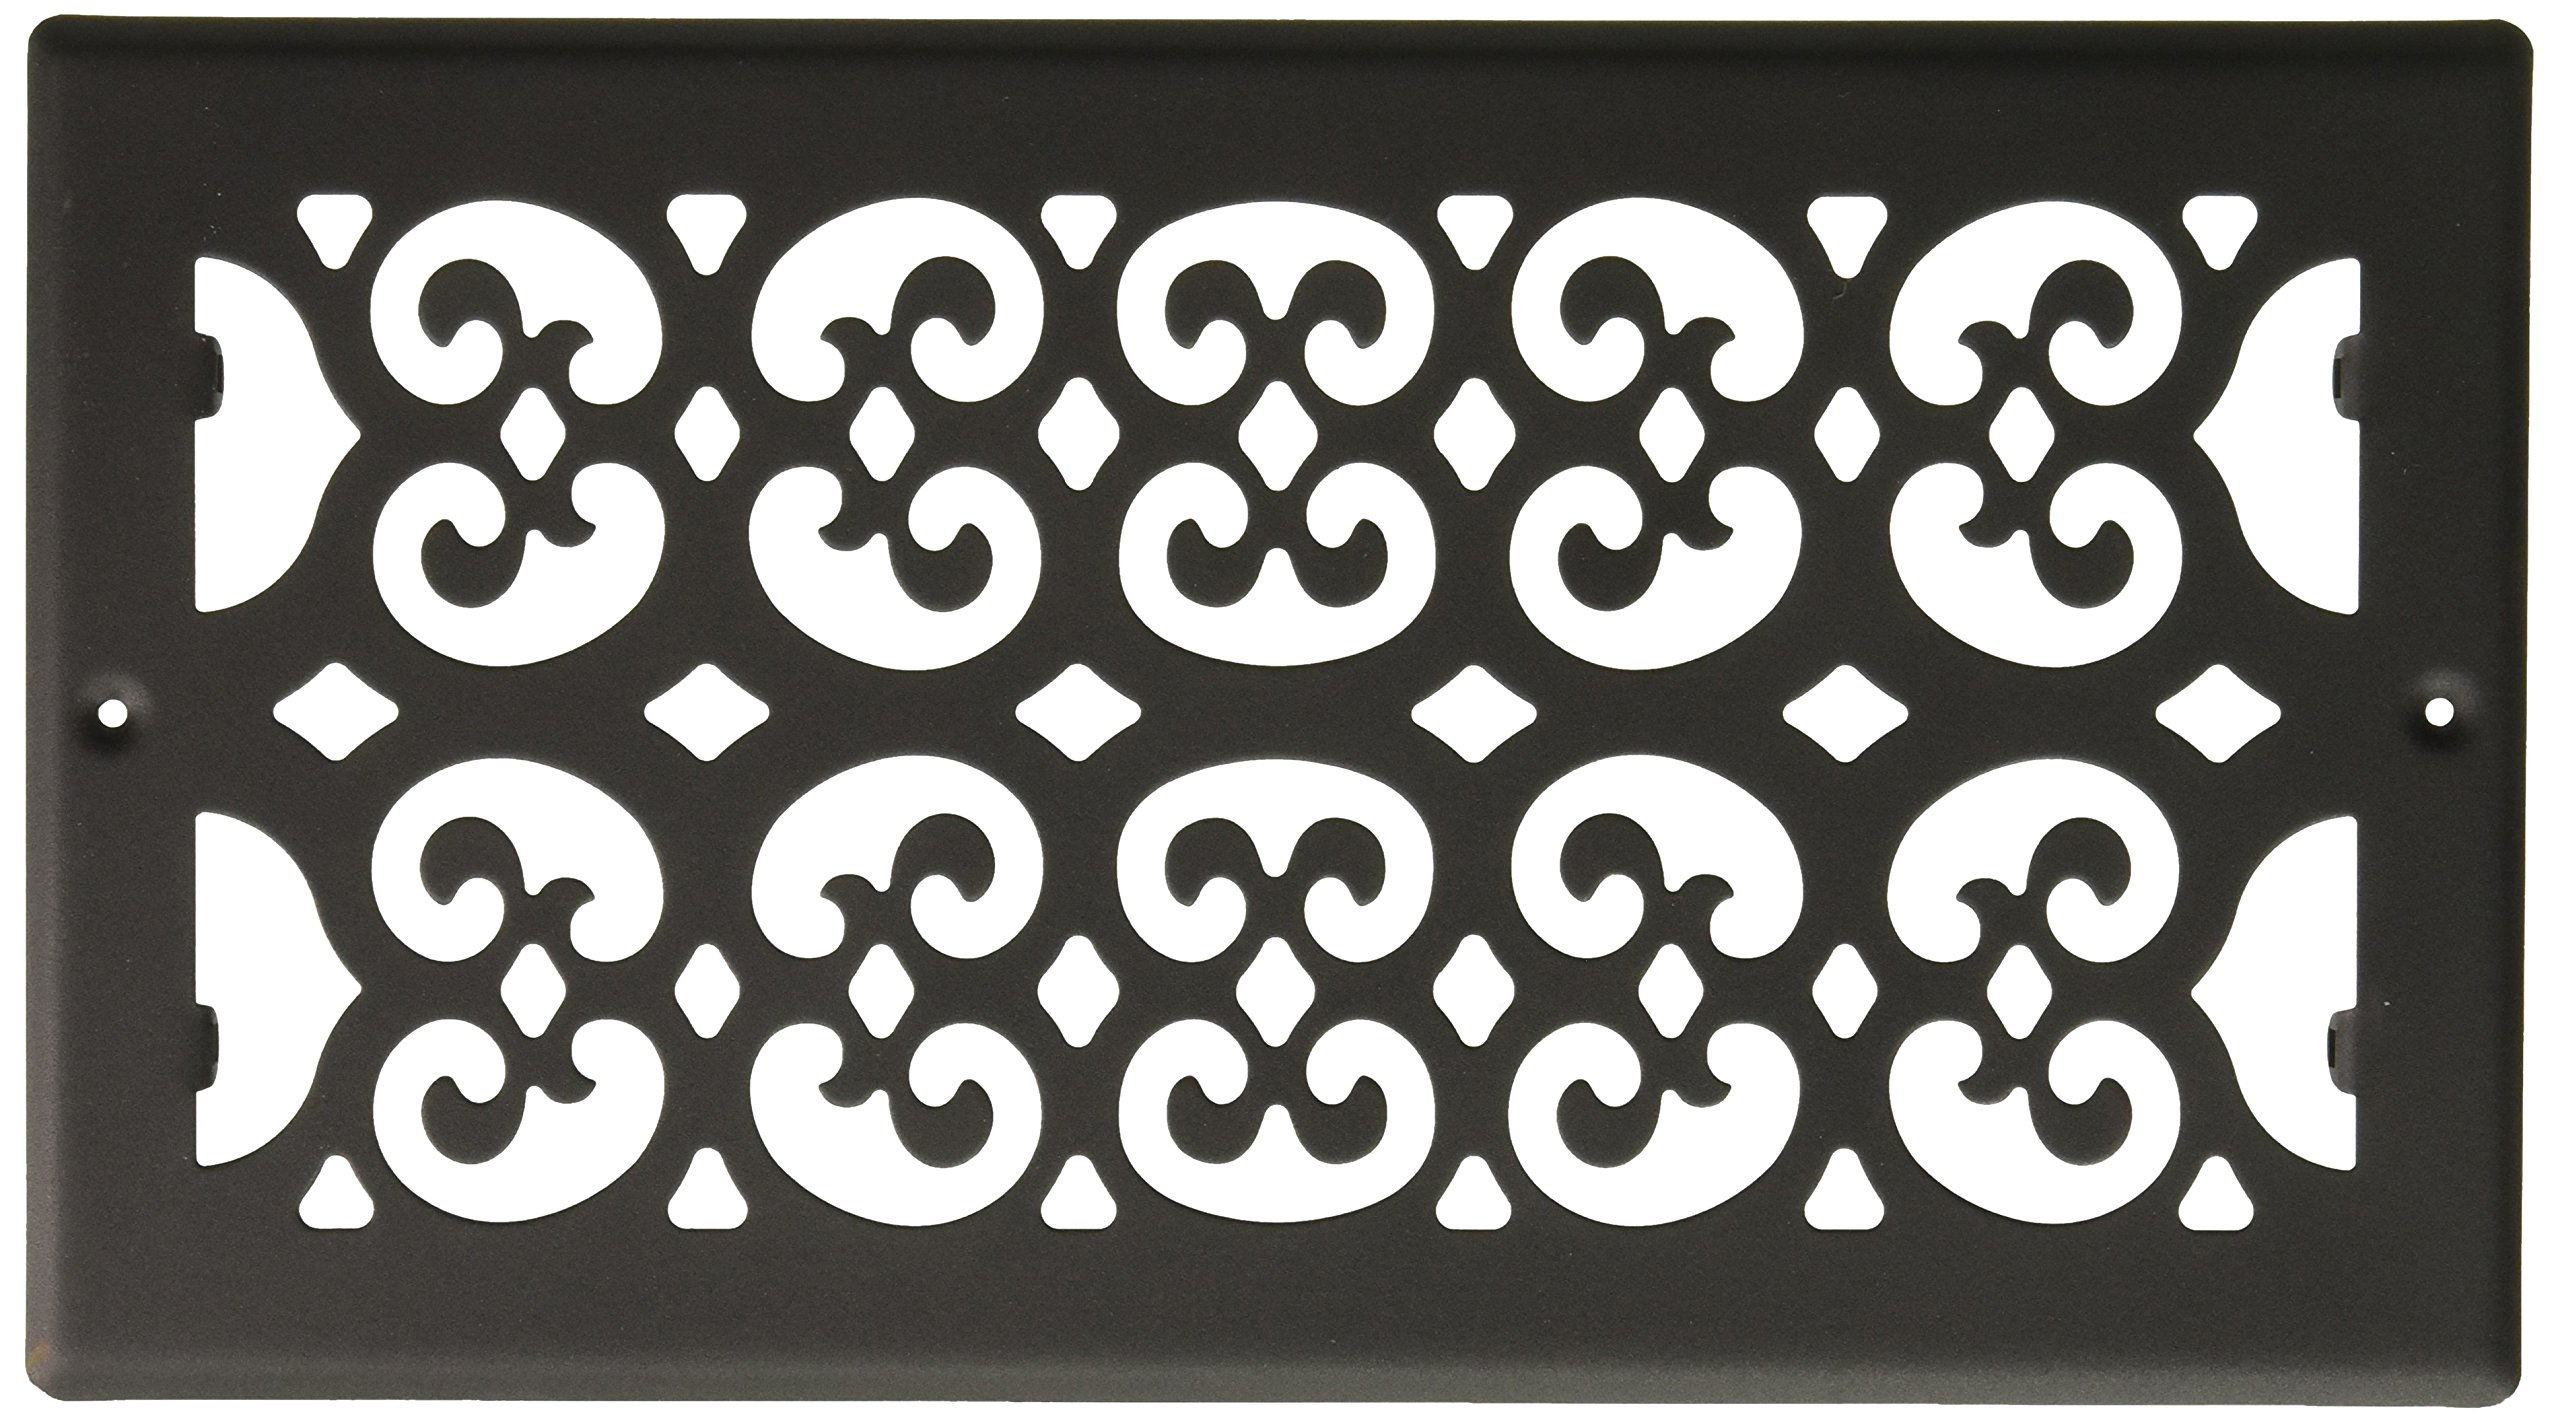 Decor Grates ST610R 6-Inch by 10-Inch Painted Return Air, Black Textured